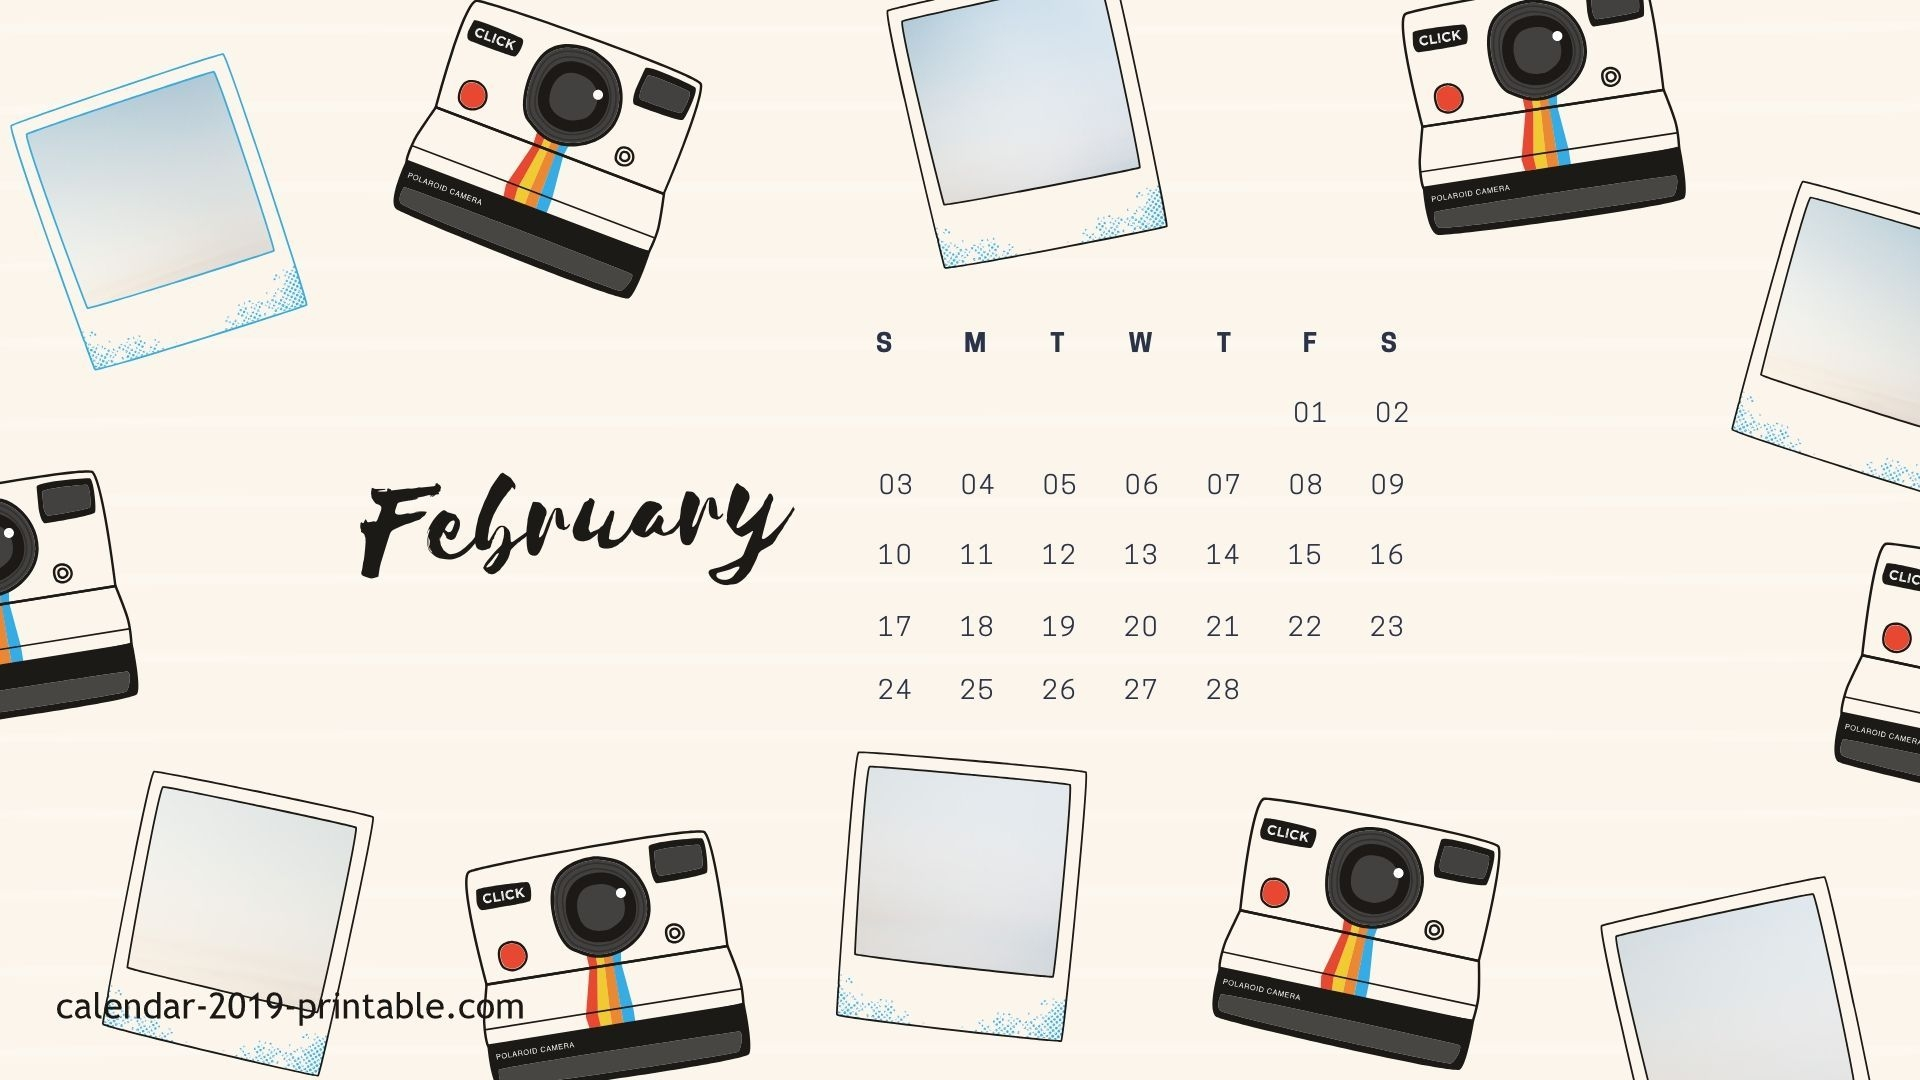 February 2019 iPhone Calendar Wallpaper